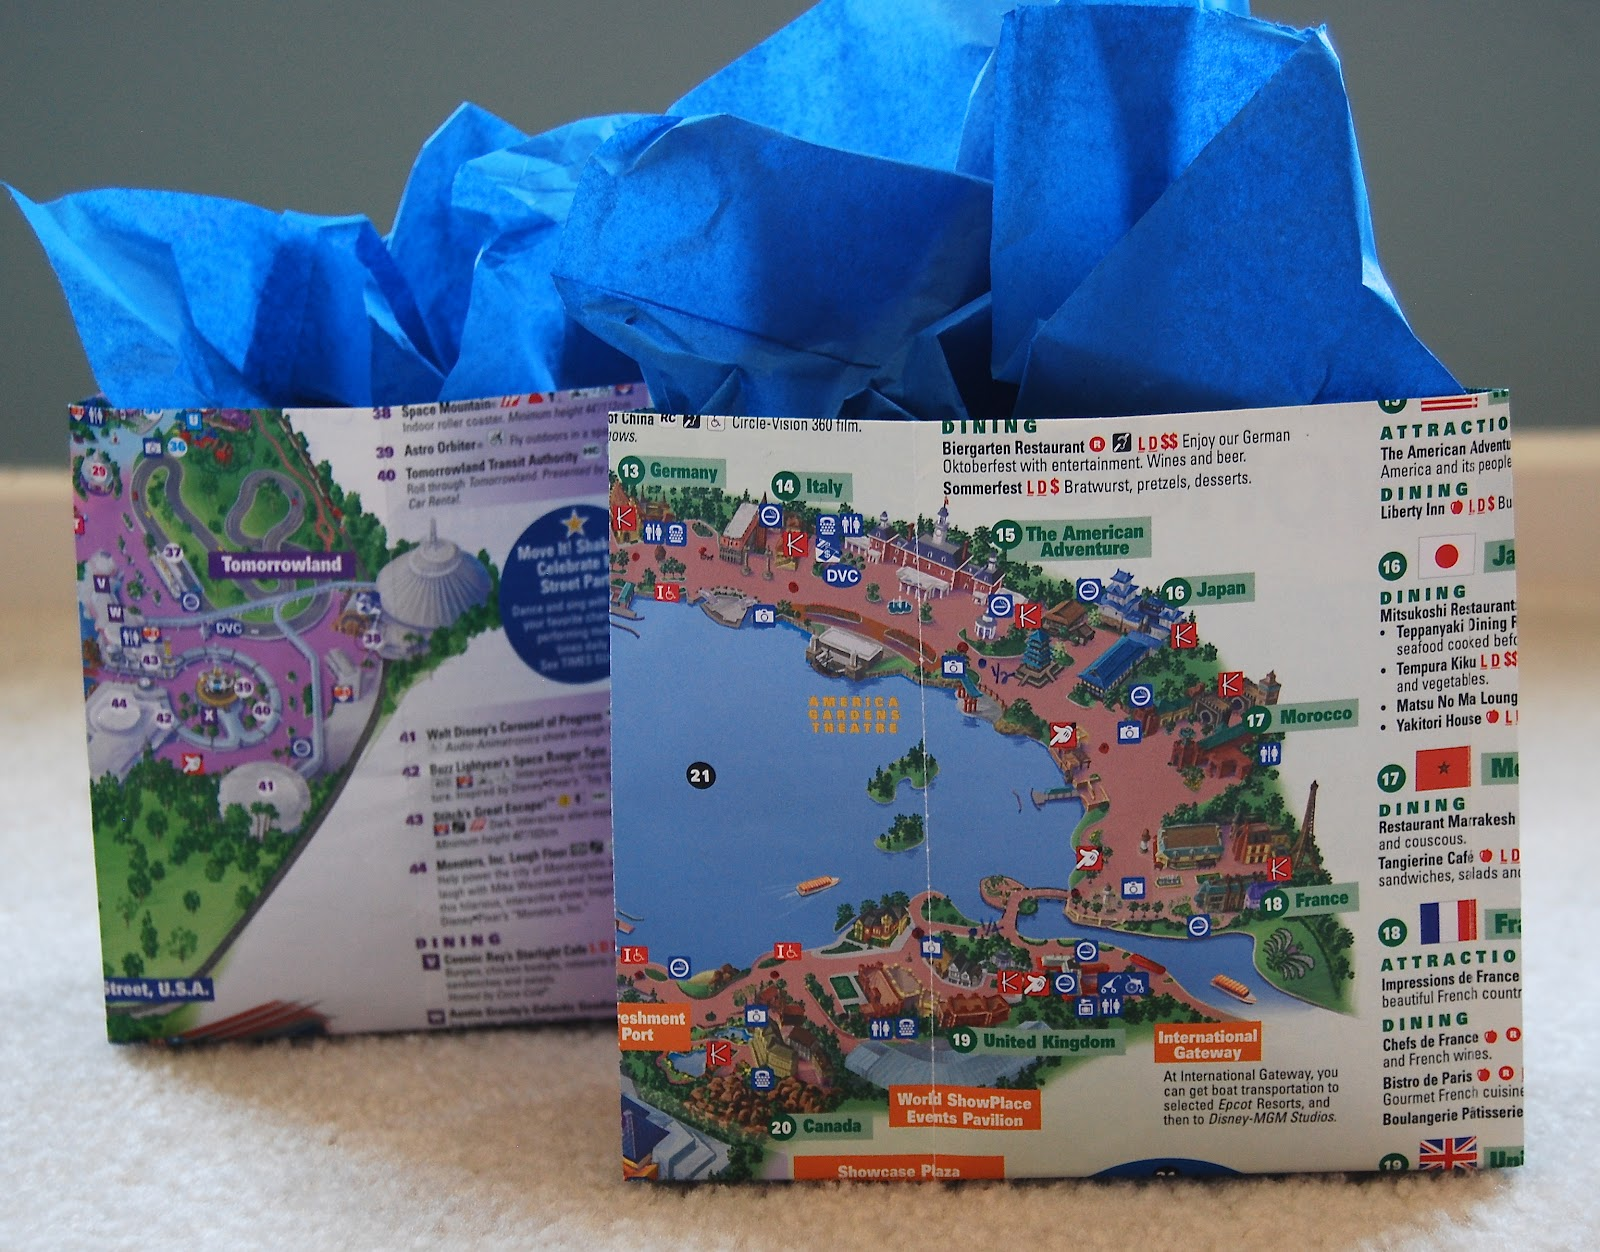 Merryweathers cottage diy disney gift bag from upcycled park map diy disney gift bag from upcycled park map gumiabroncs